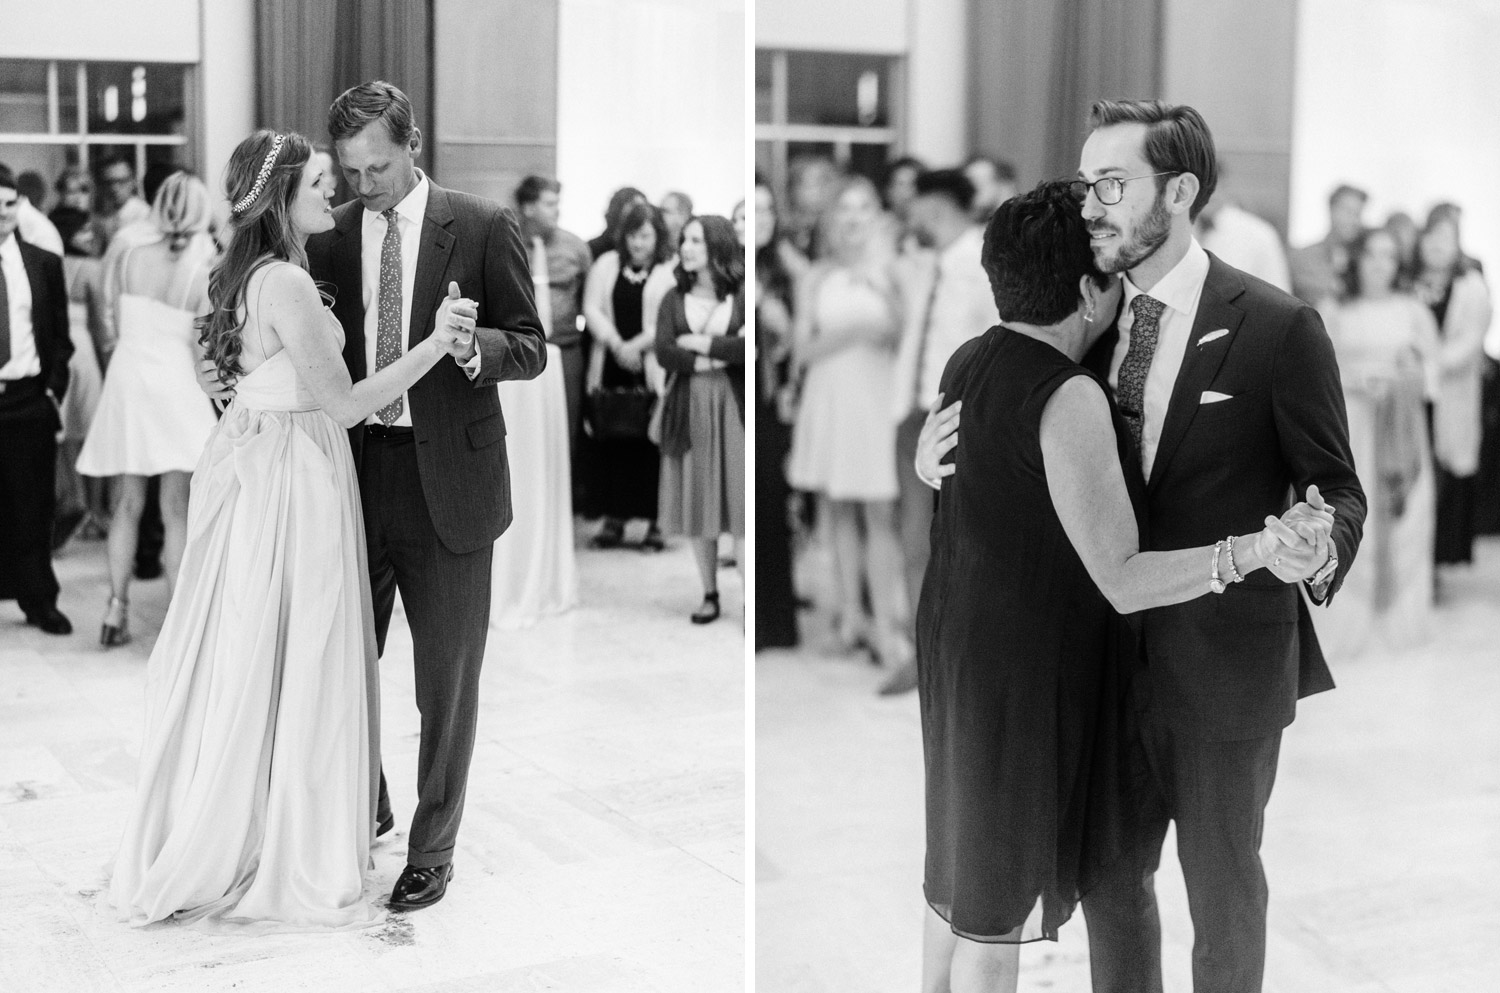 Wedding Reception at Des Moines Art Center images by geneoh photography